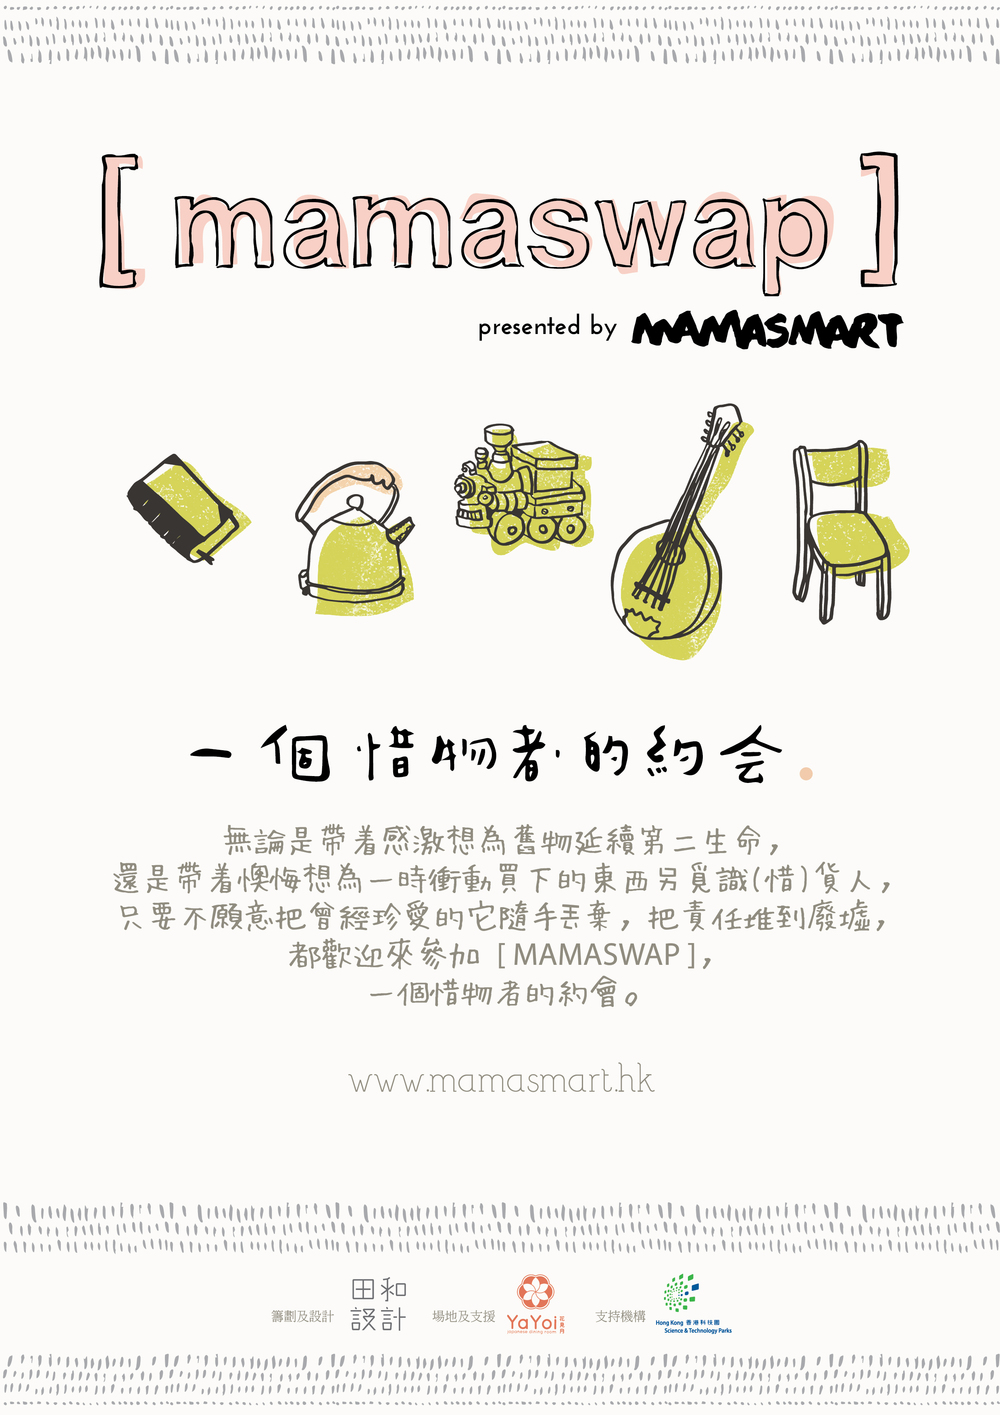 GRAPHIC DESIGN FOR [ MAMASWAP ] EVENT - 2015